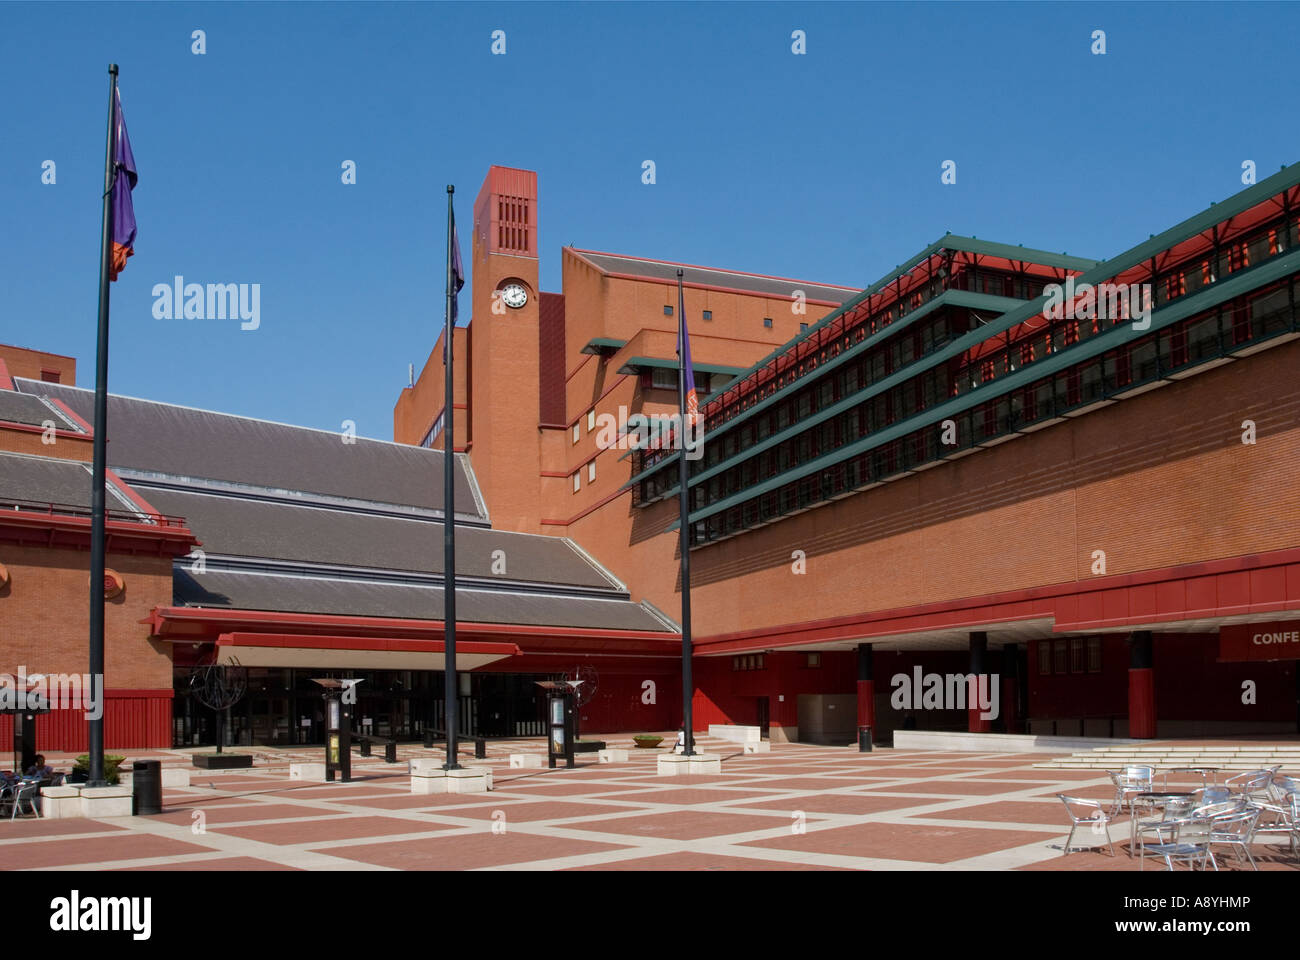 The British Library - Kings Cross - London - Stock Image